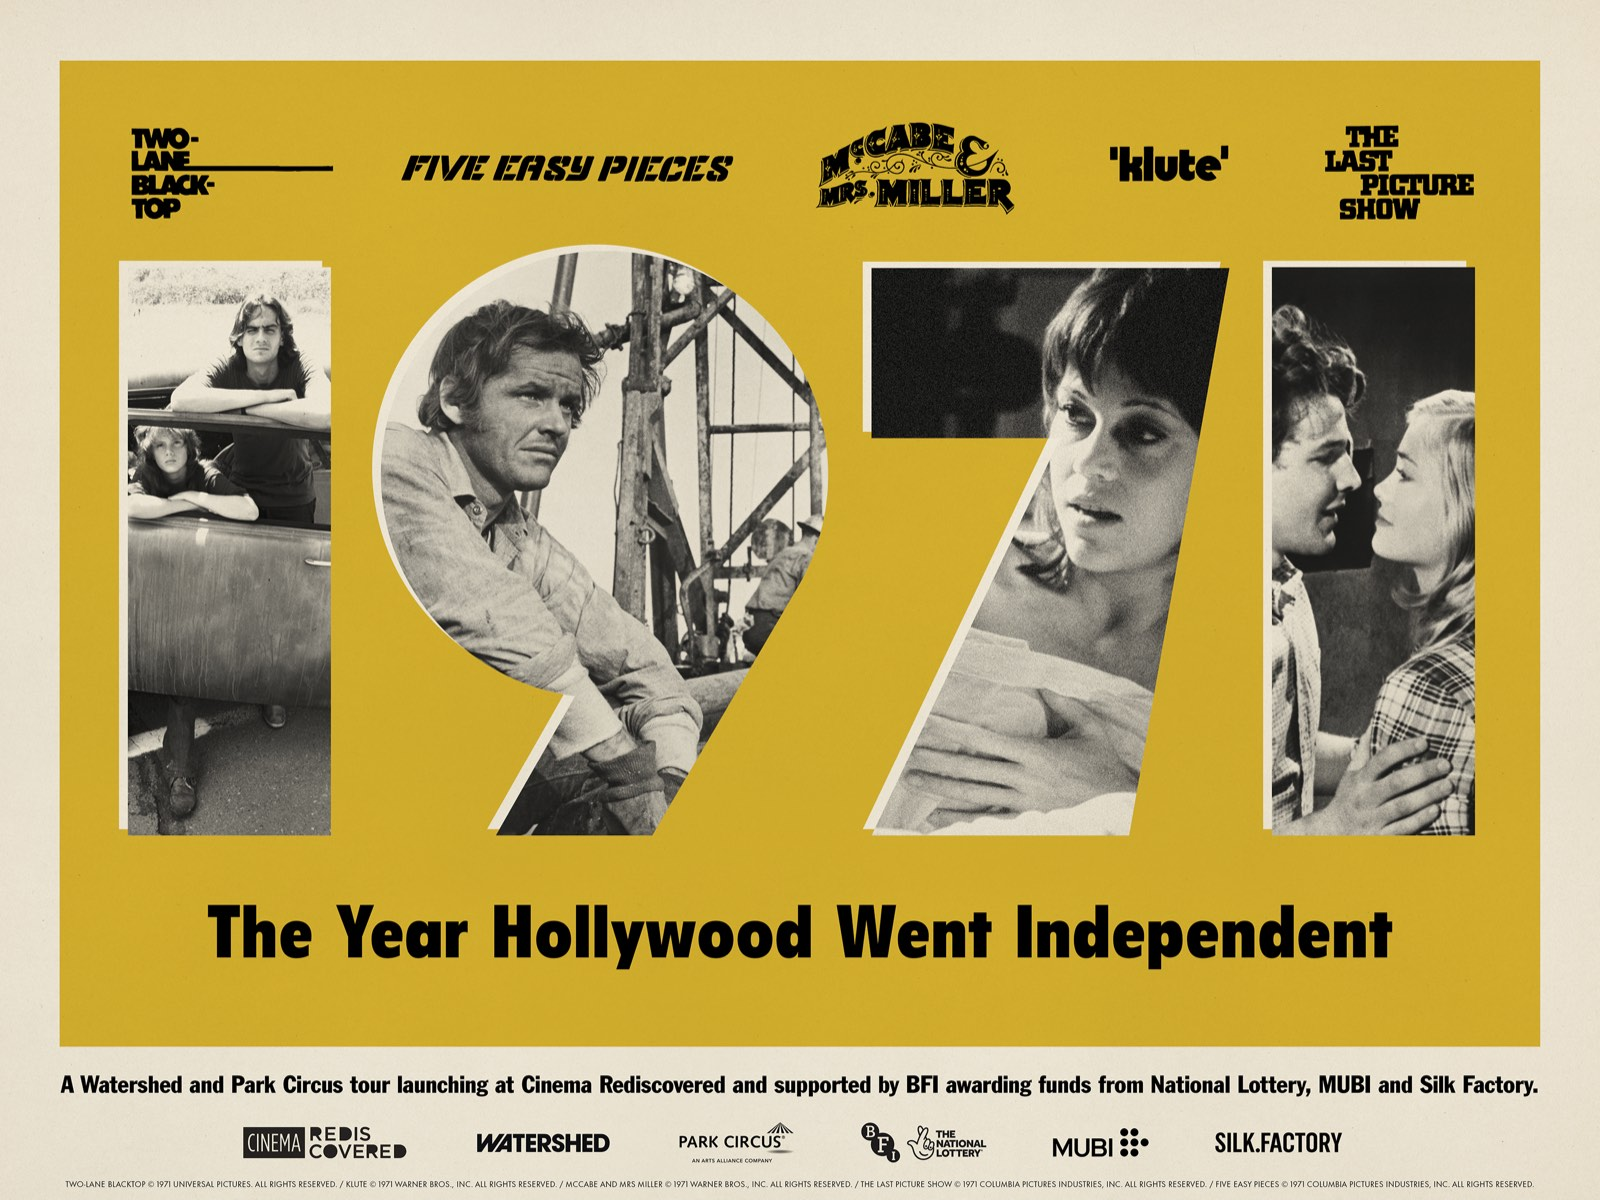 1971: The Year Hollywood Went Independent